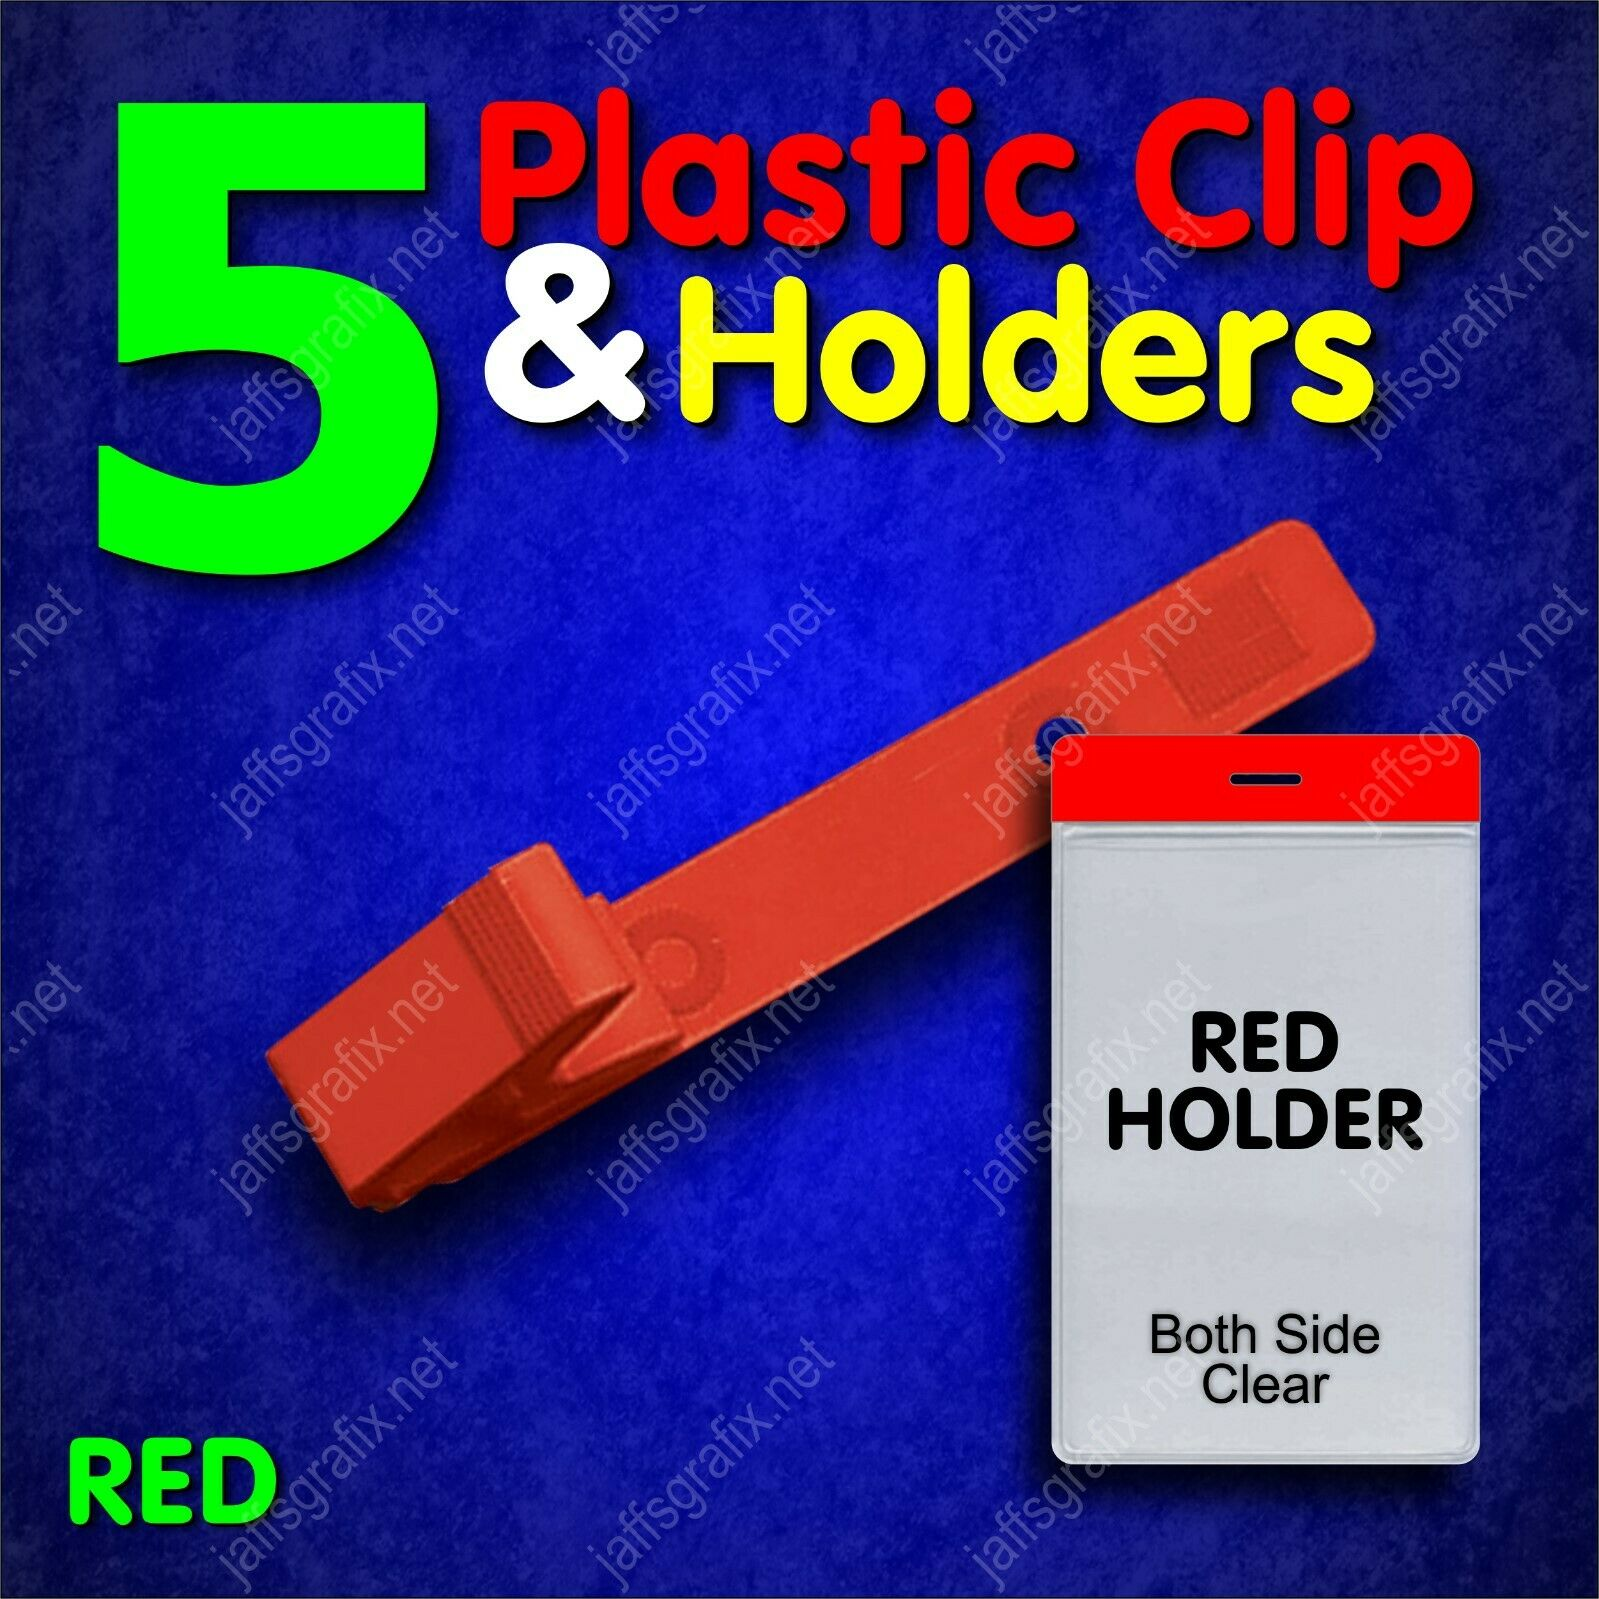 Color Plastic ID Badge Holder Clip with Red Holder VERTICAL